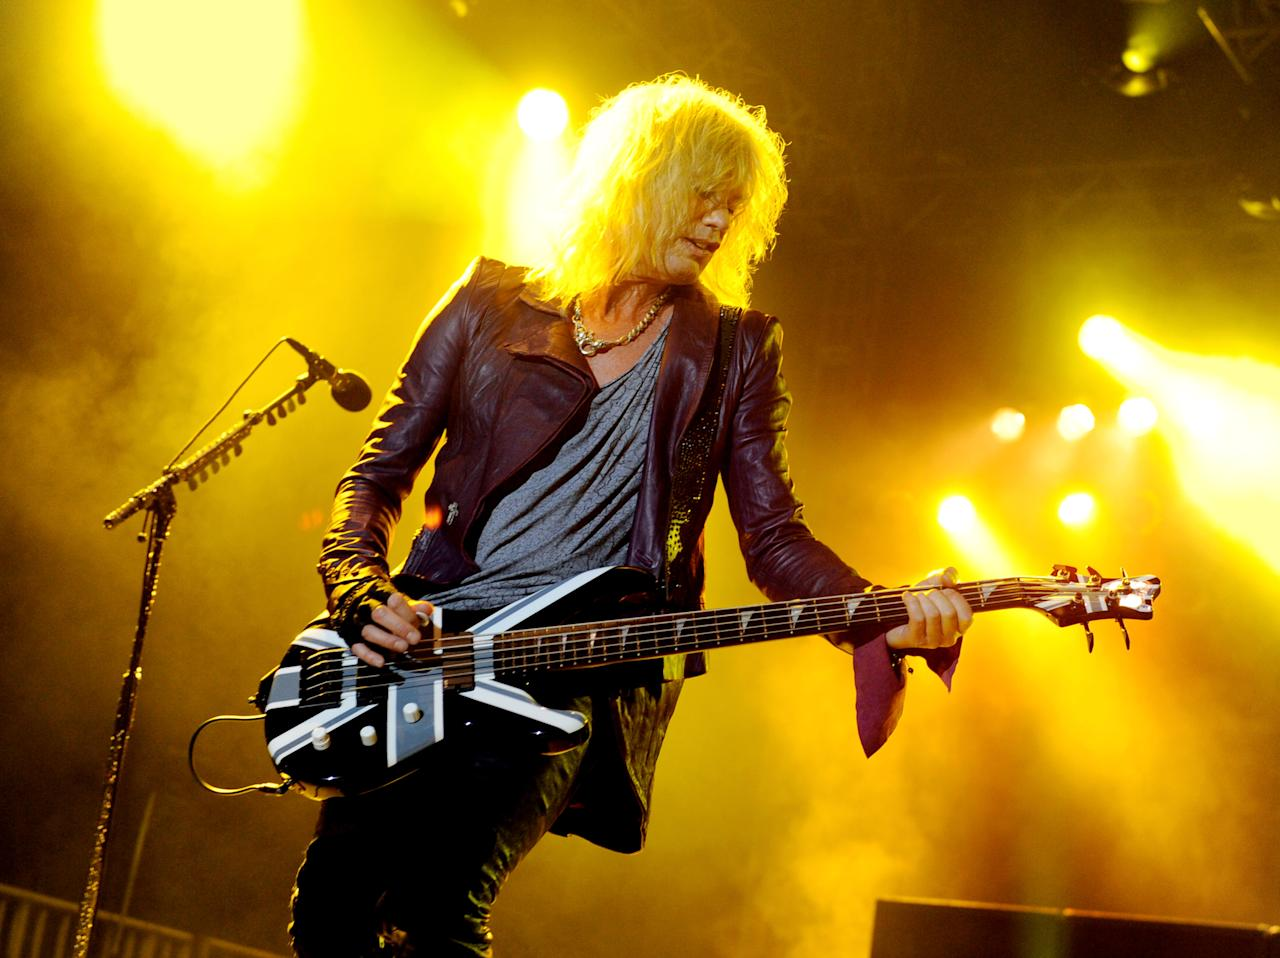 """LOS ANGELES, CA - JUNE 08:  Musician Rick Savage of Def Leppard performs at the after party for the premiere of Warner Bros. Pictures' """"Rock Of Ages"""" at Hollywood and Highland on June 8, 2012 in Los Angeles, California.  (Photo by Kevin Winter/Getty Images)"""